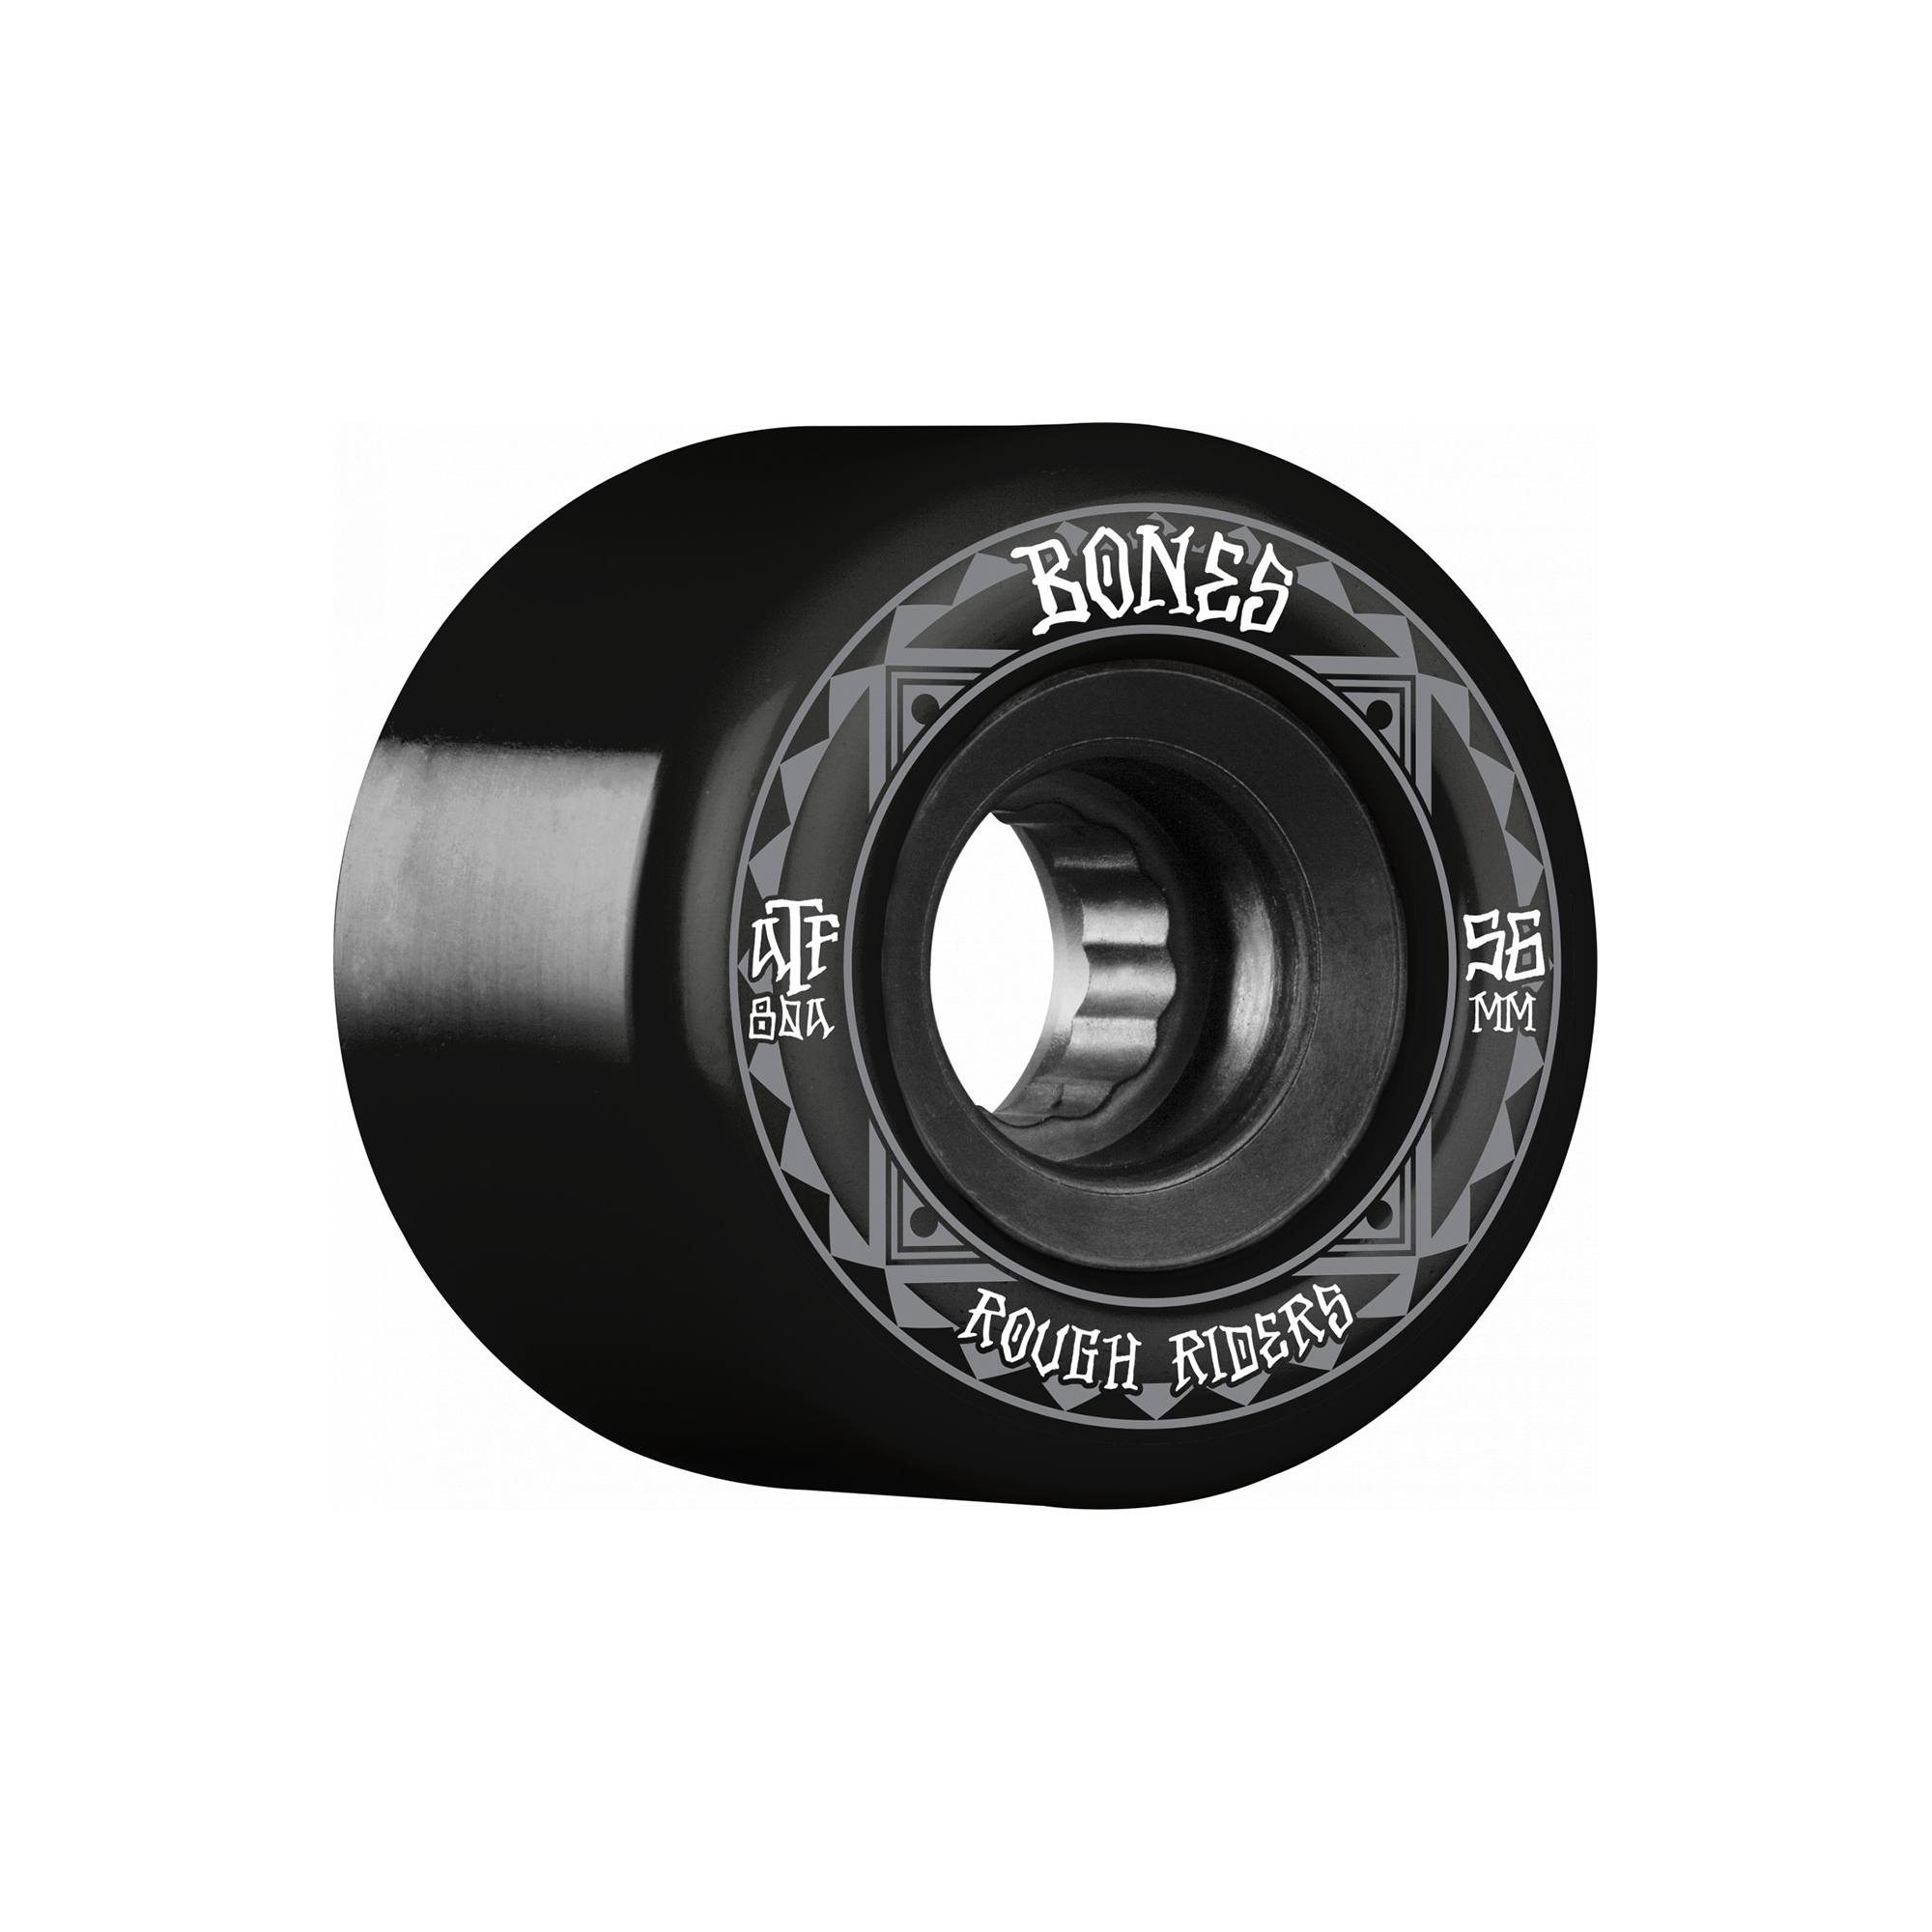 Bones ATF Rough Riders Runners Wheels Product Photo #1